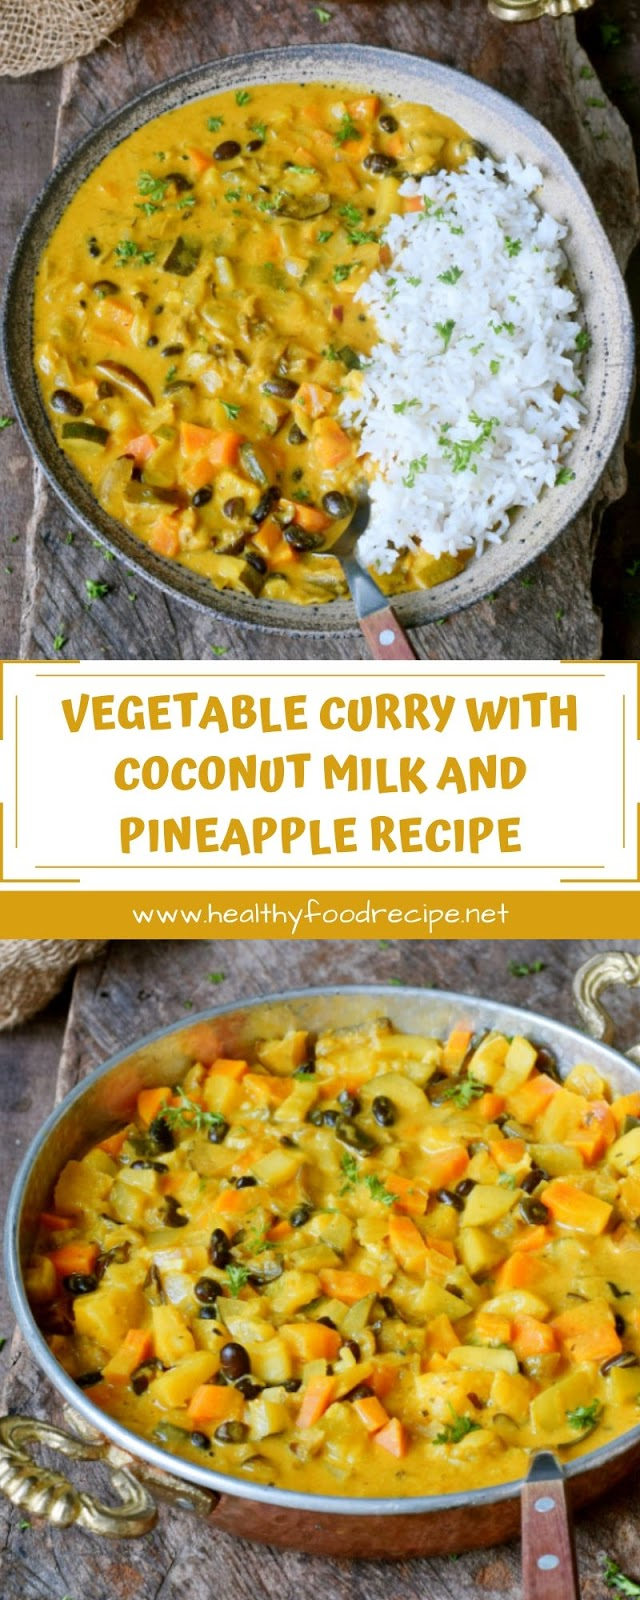 VEGETABLE CURRY WITH COCONUT MILK AND PINEAPPLE RECIPE